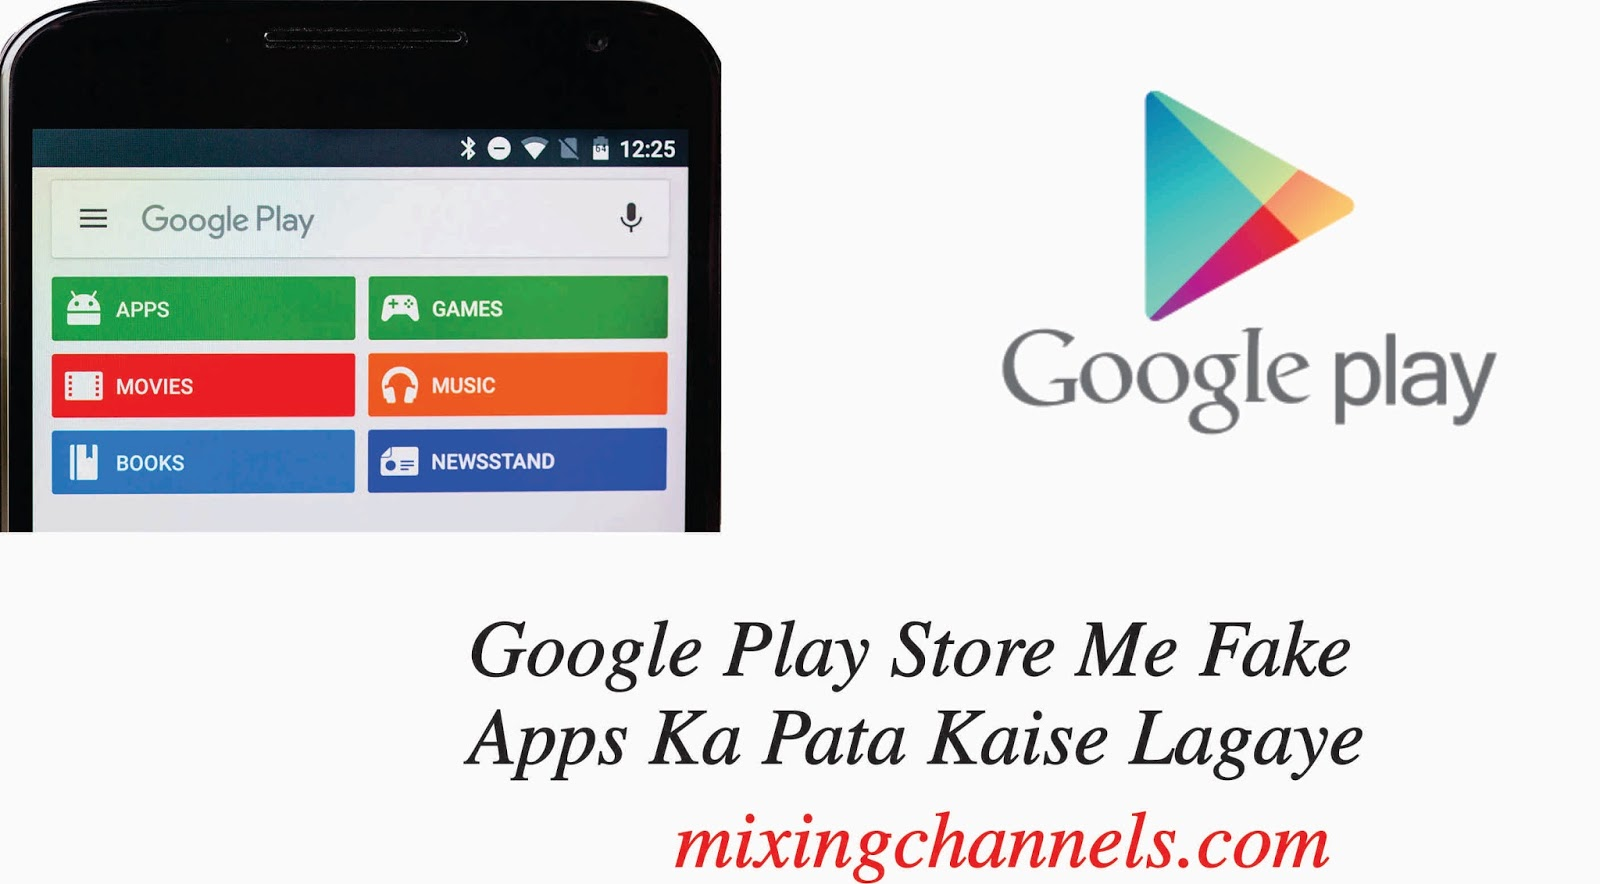 Playstore Karte.Google Play Store Me Fake Apps Ka Pata Kaise Lagaye Mixing